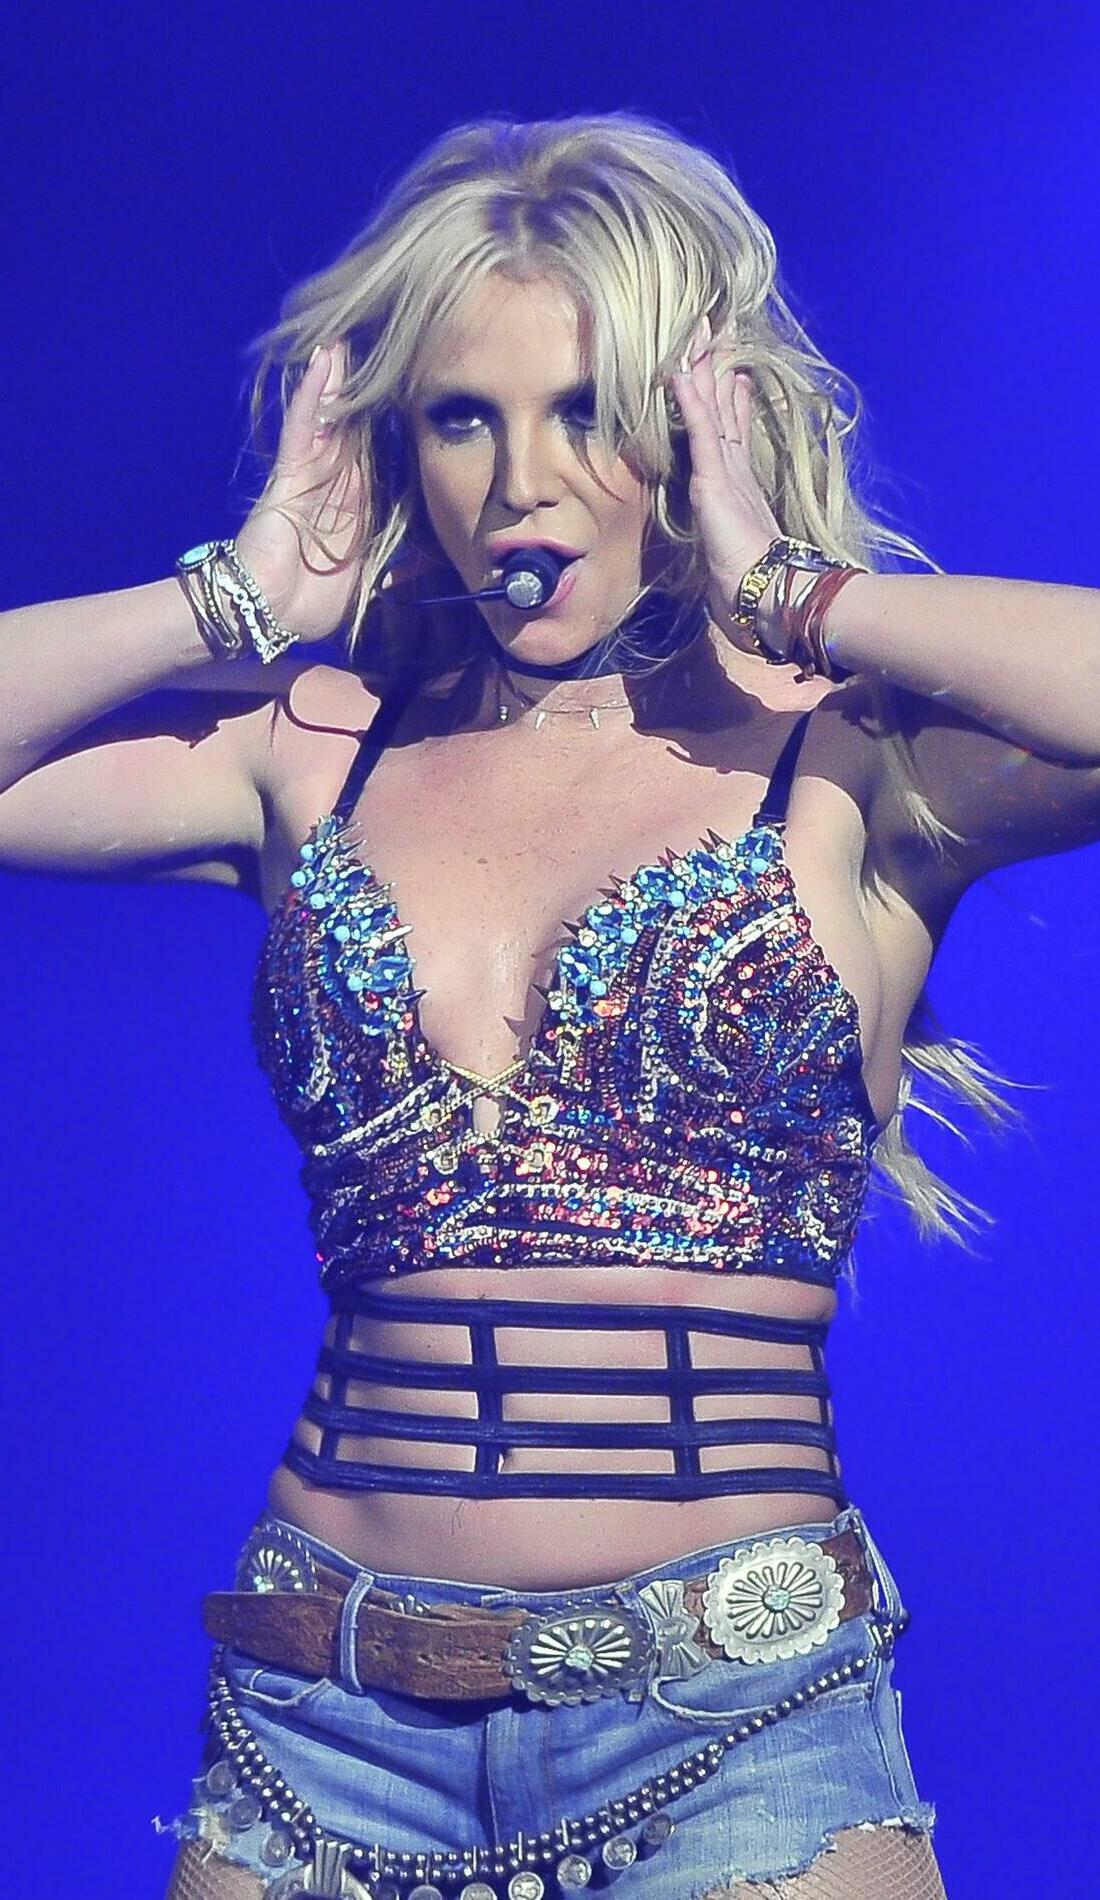 A Britney Spears live event